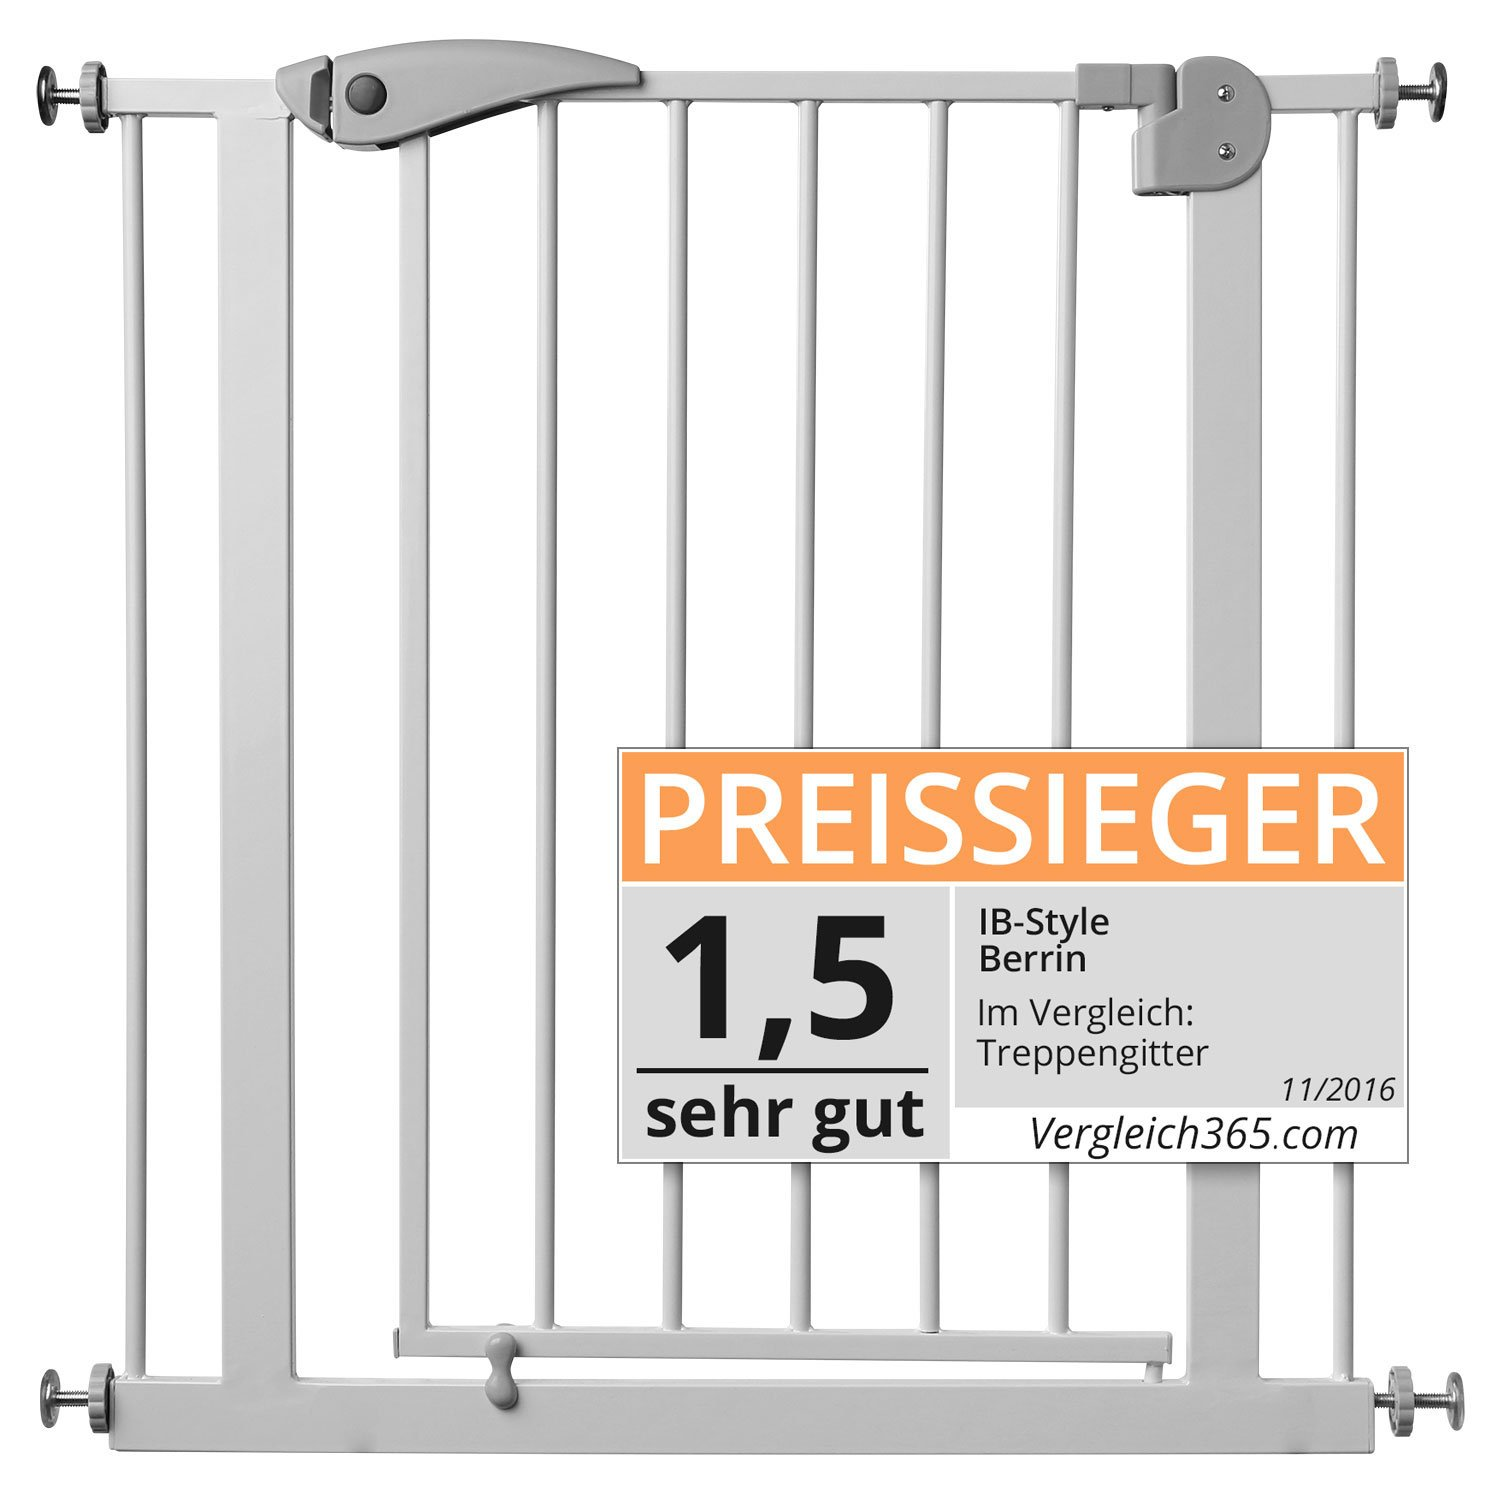 ib style Berrin Treppengitter 67-175 I Auto-Close I 90°Stop I Einhand-Bedienung IB-Style